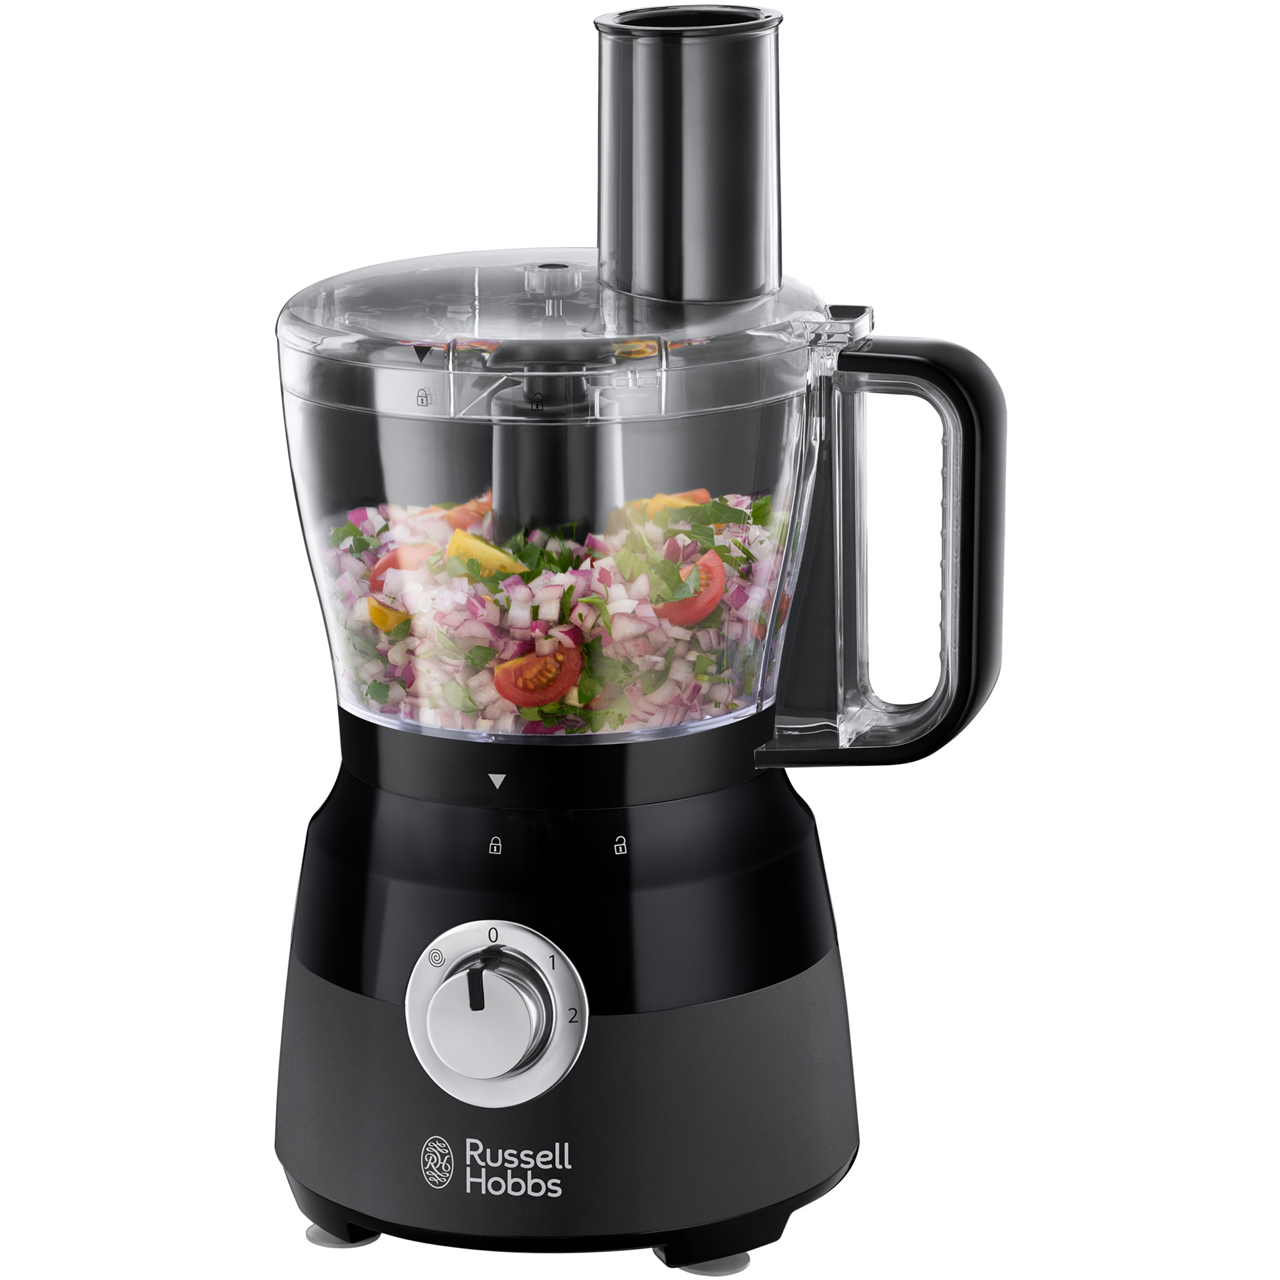 Russell Hobbs Desire 24732 1 5 Litre Food Processor With 6 Accessories -  Black